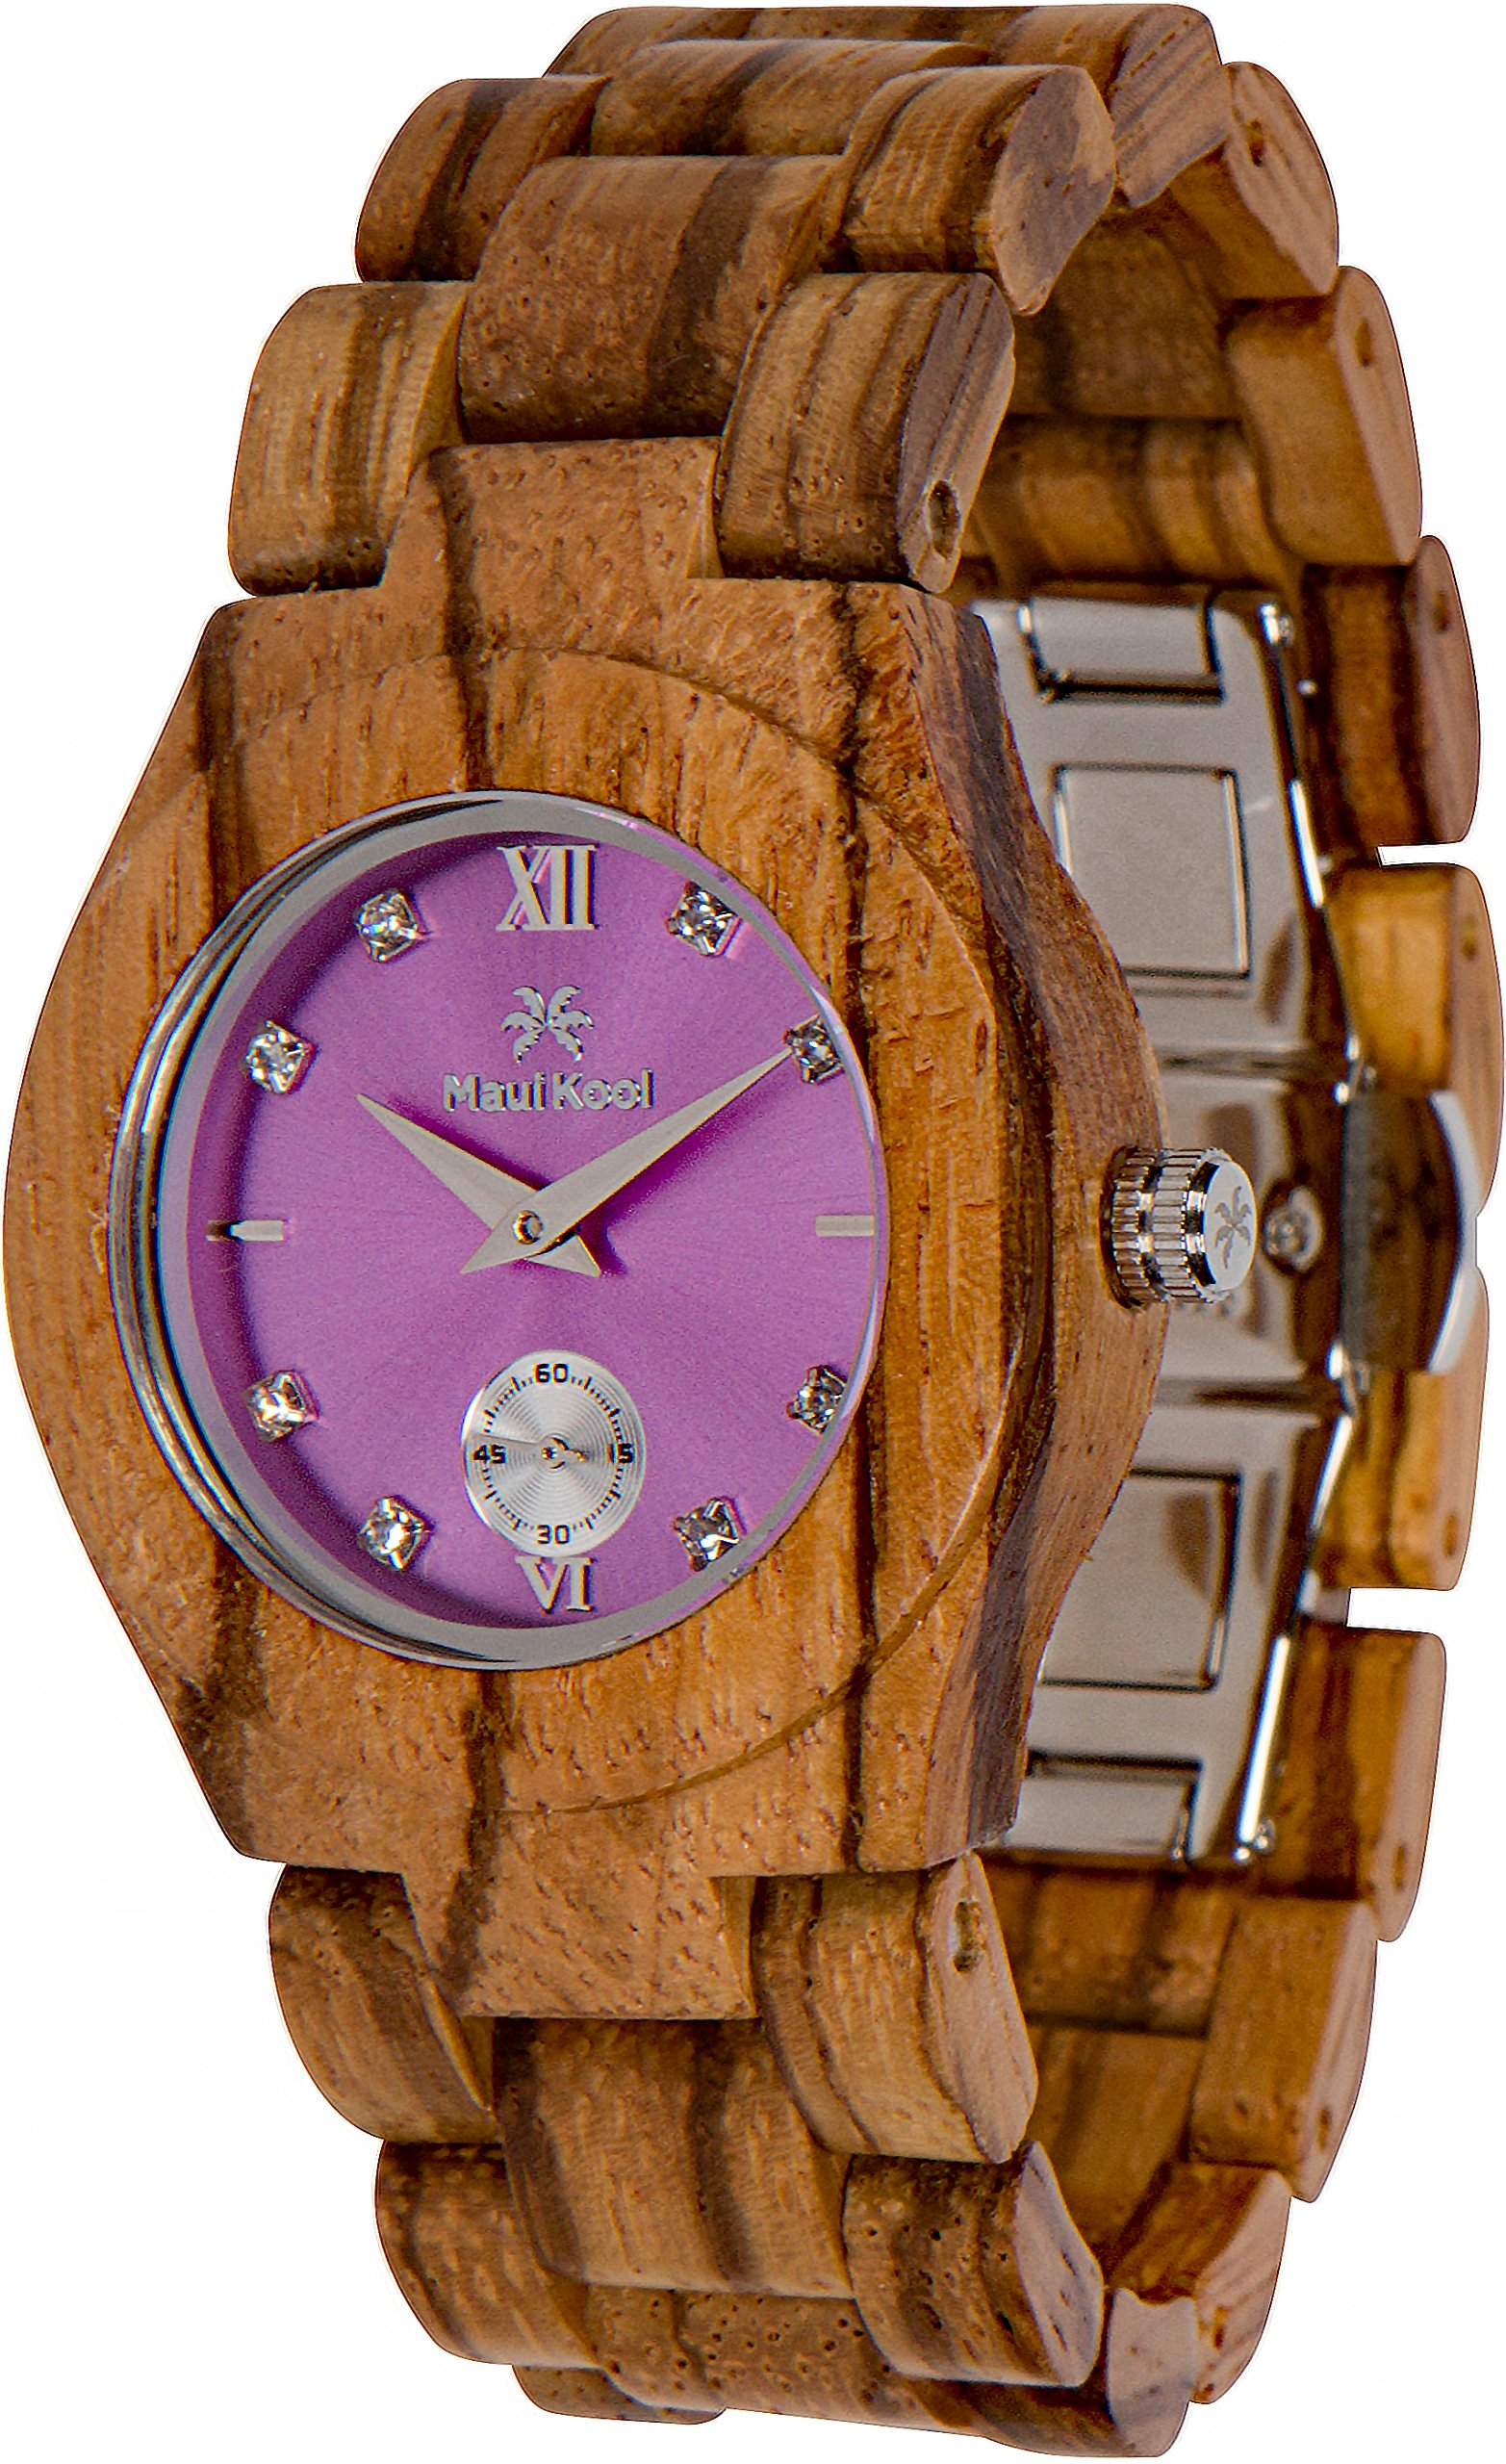 Maui Kool Wooden Watch Hana Collection for Women Analog Wood Watch Bamboo Gift Box (B6 - Zebra Lavender)